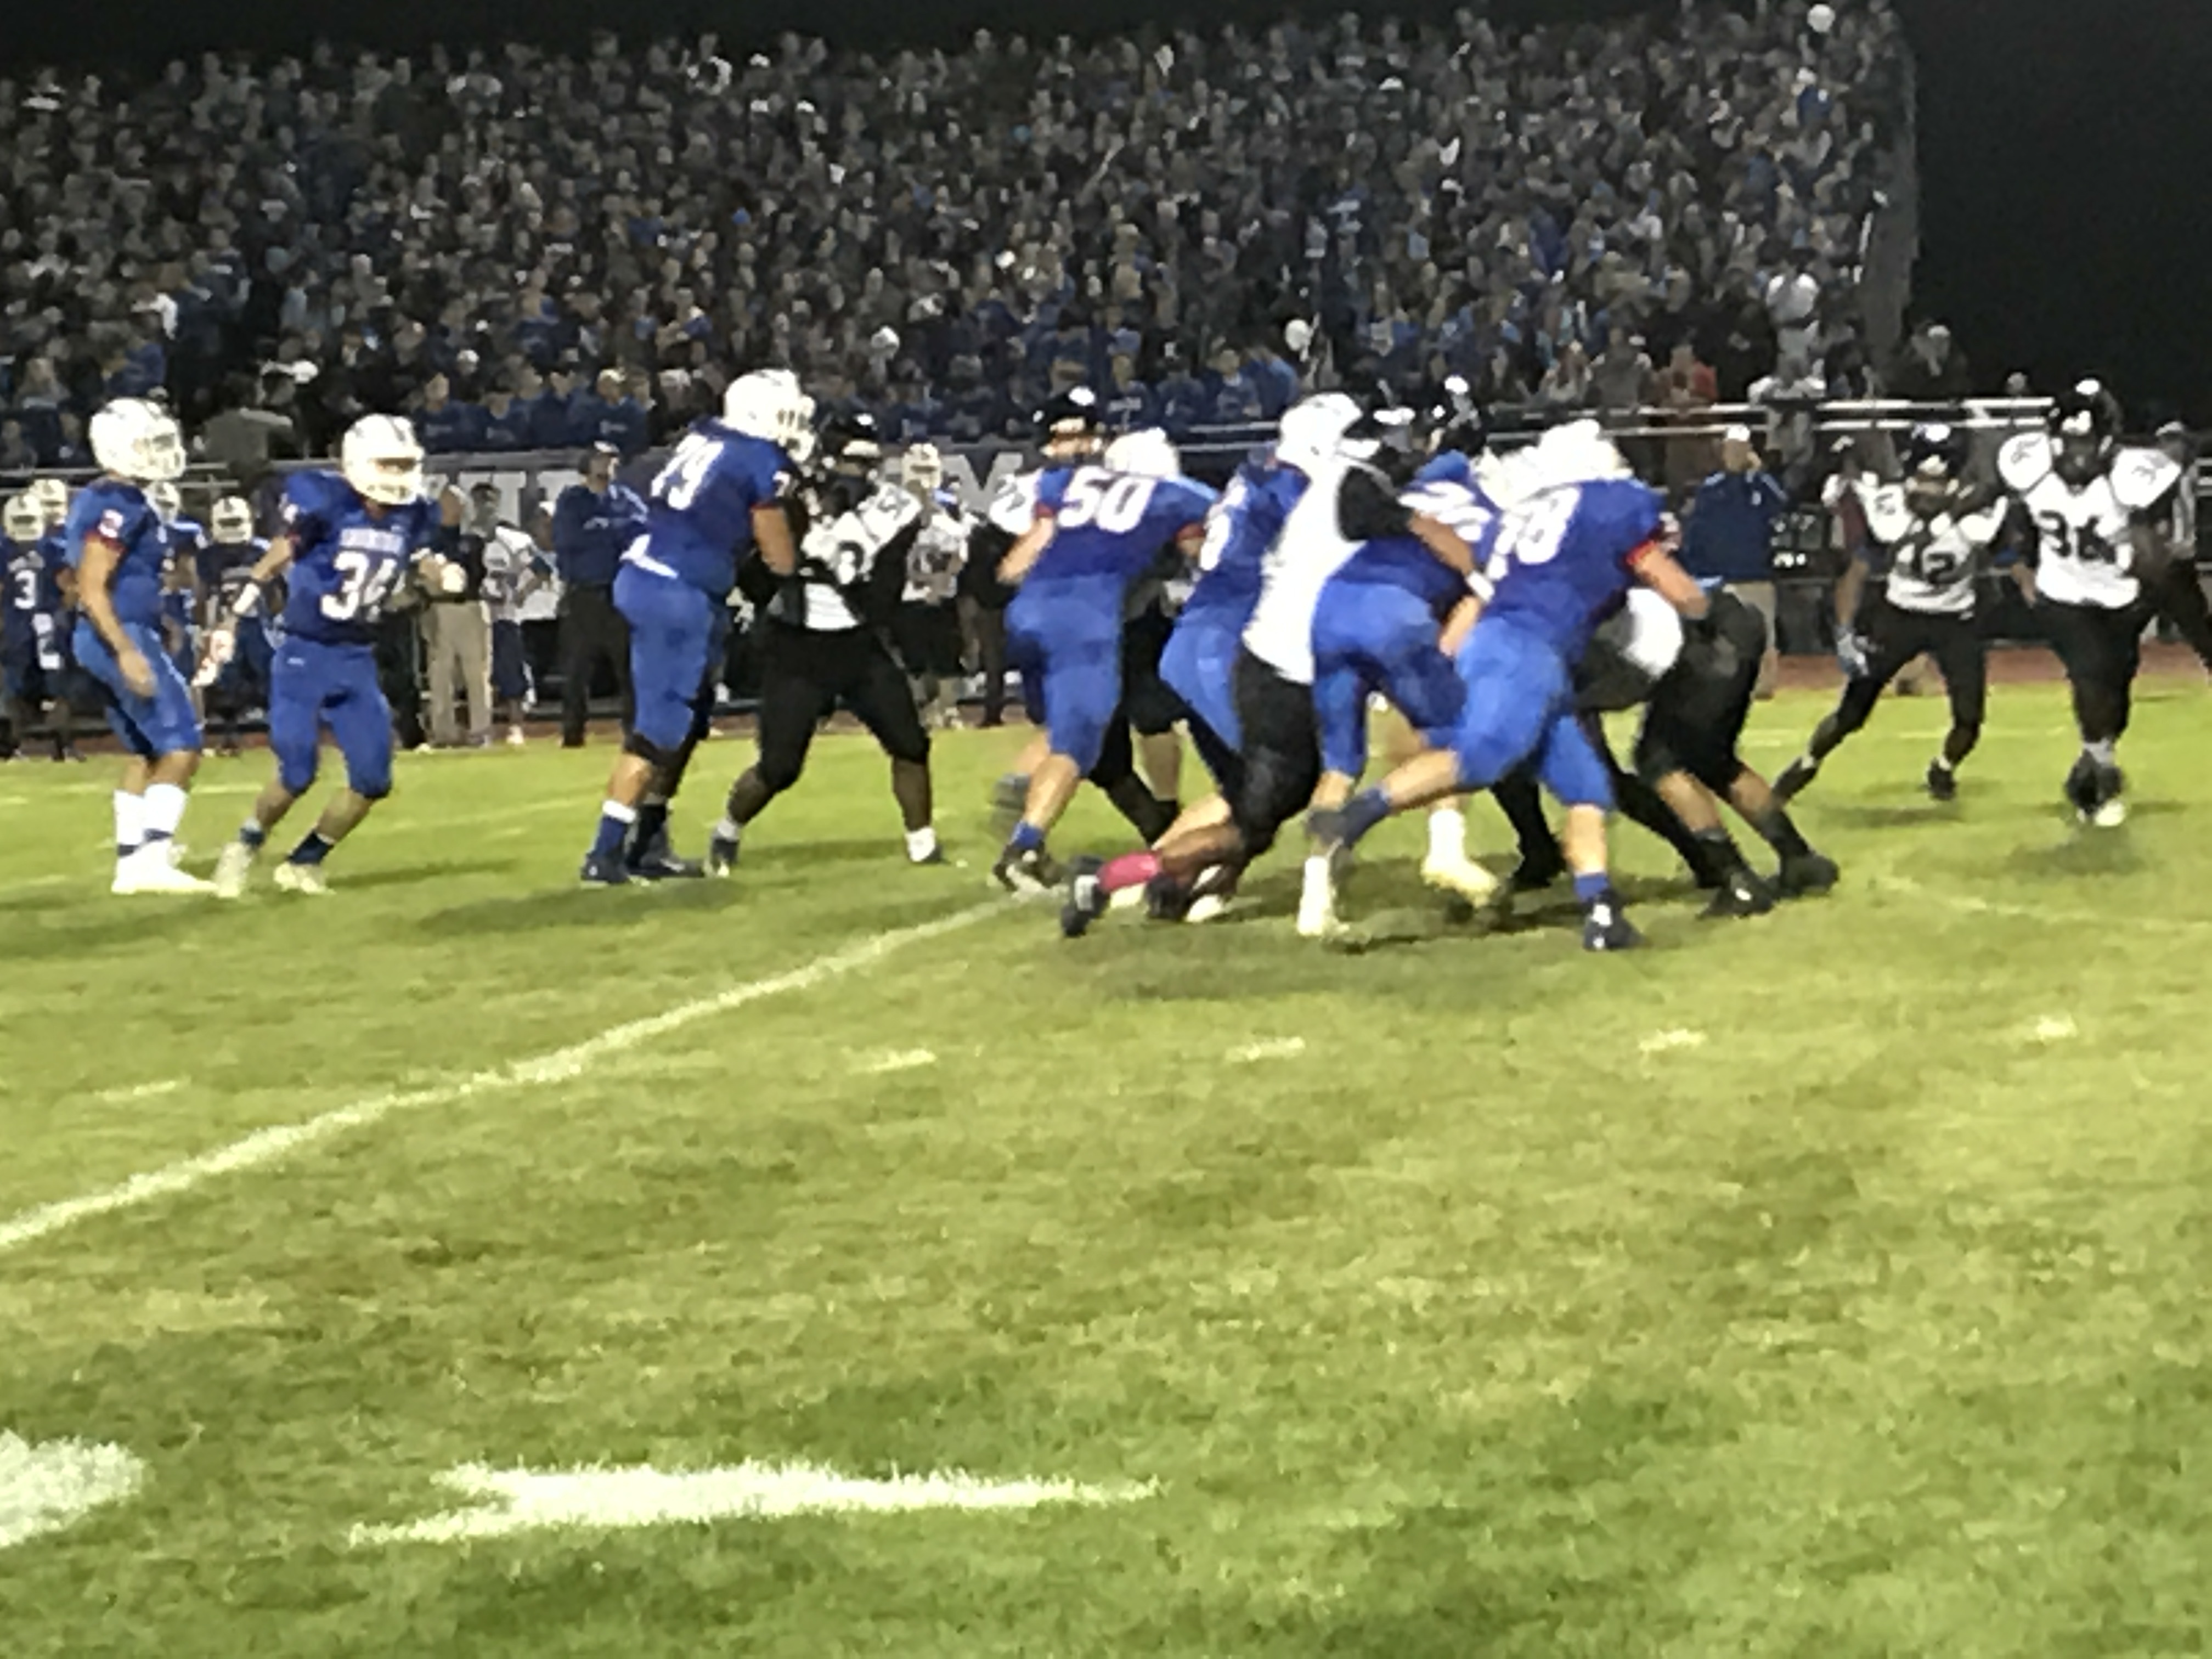 Football: Saratoga beats Albany in homecoming game